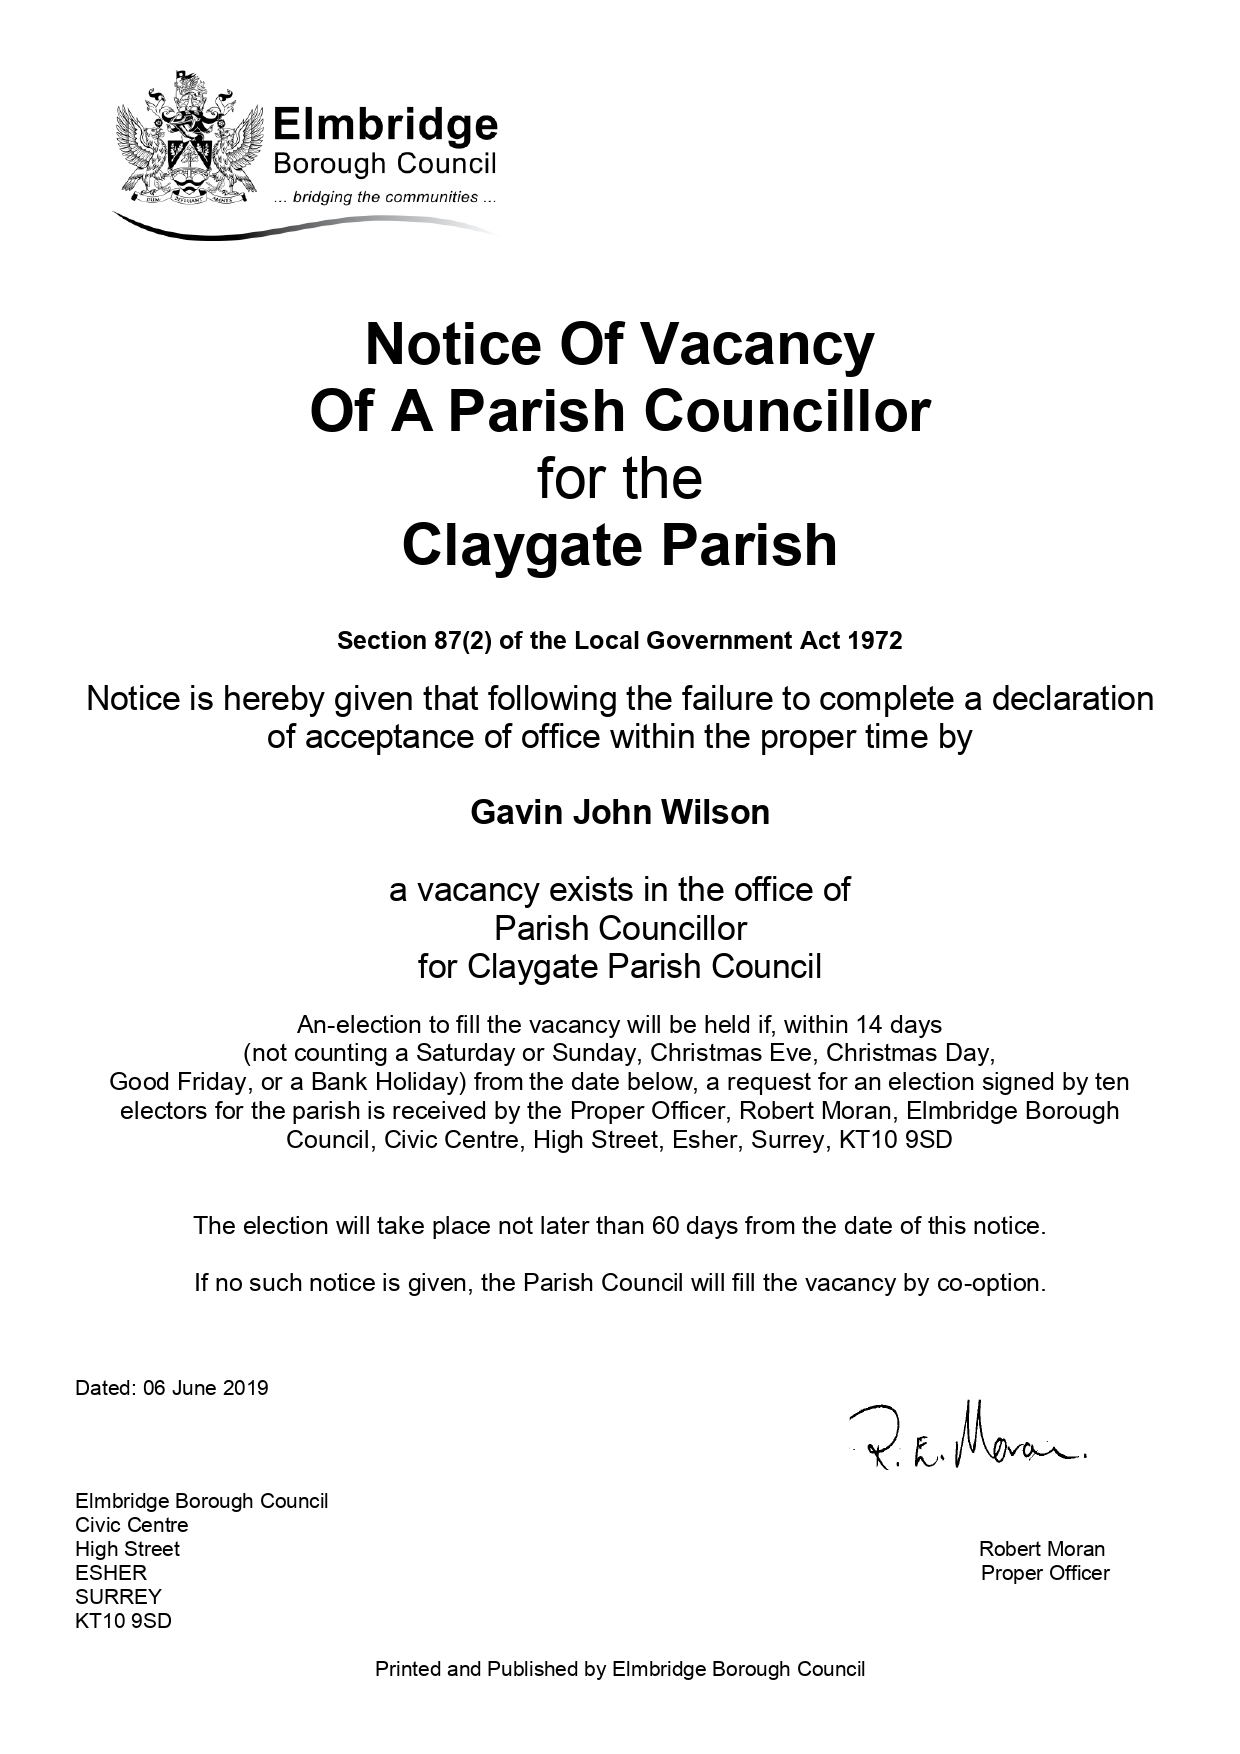 Notice of Vacancy - click to download pdf version